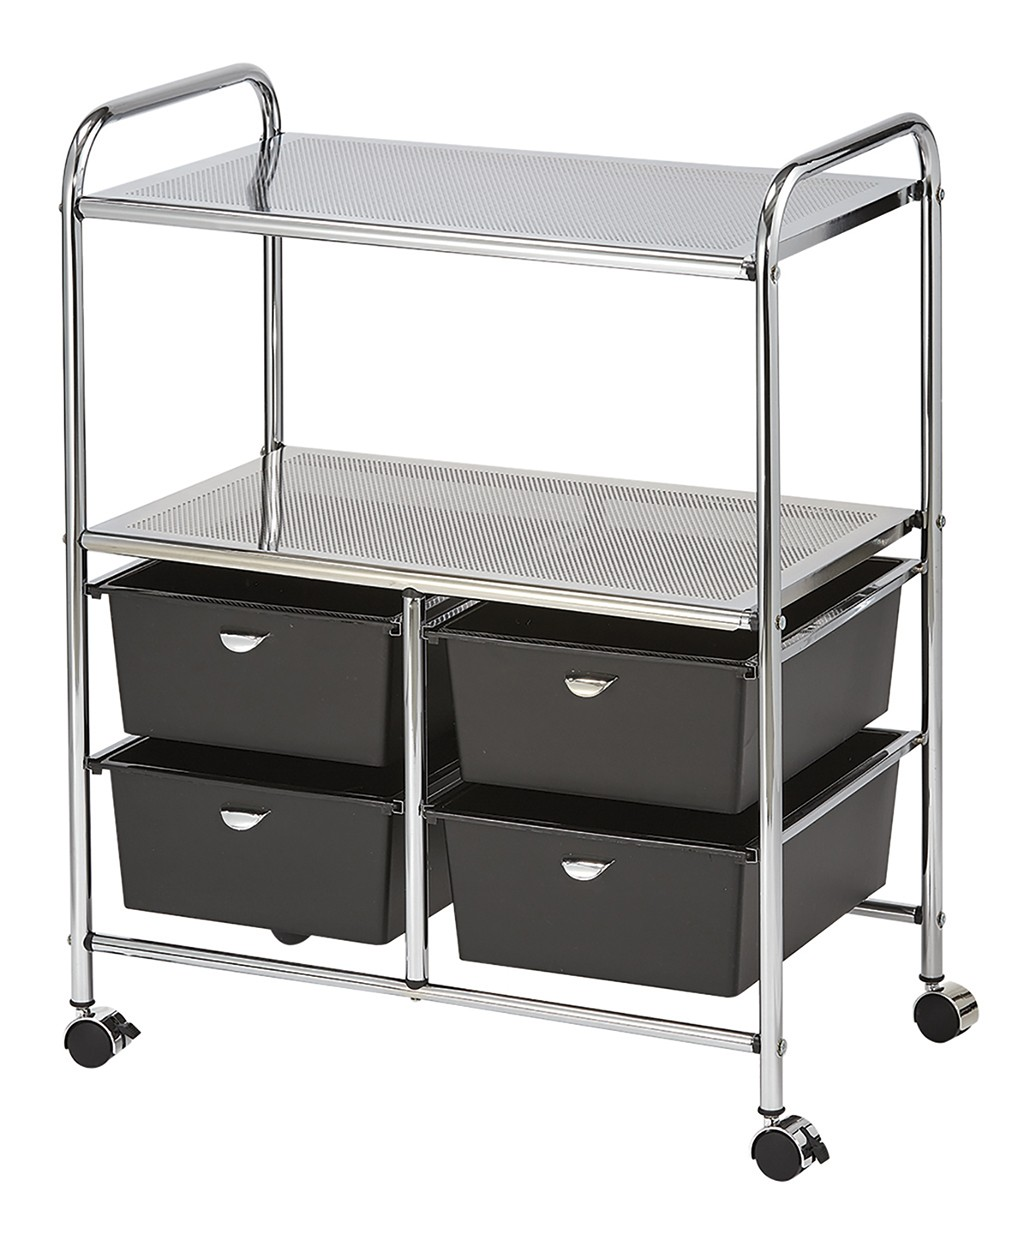 Pibbs D4B Work Cart - Black